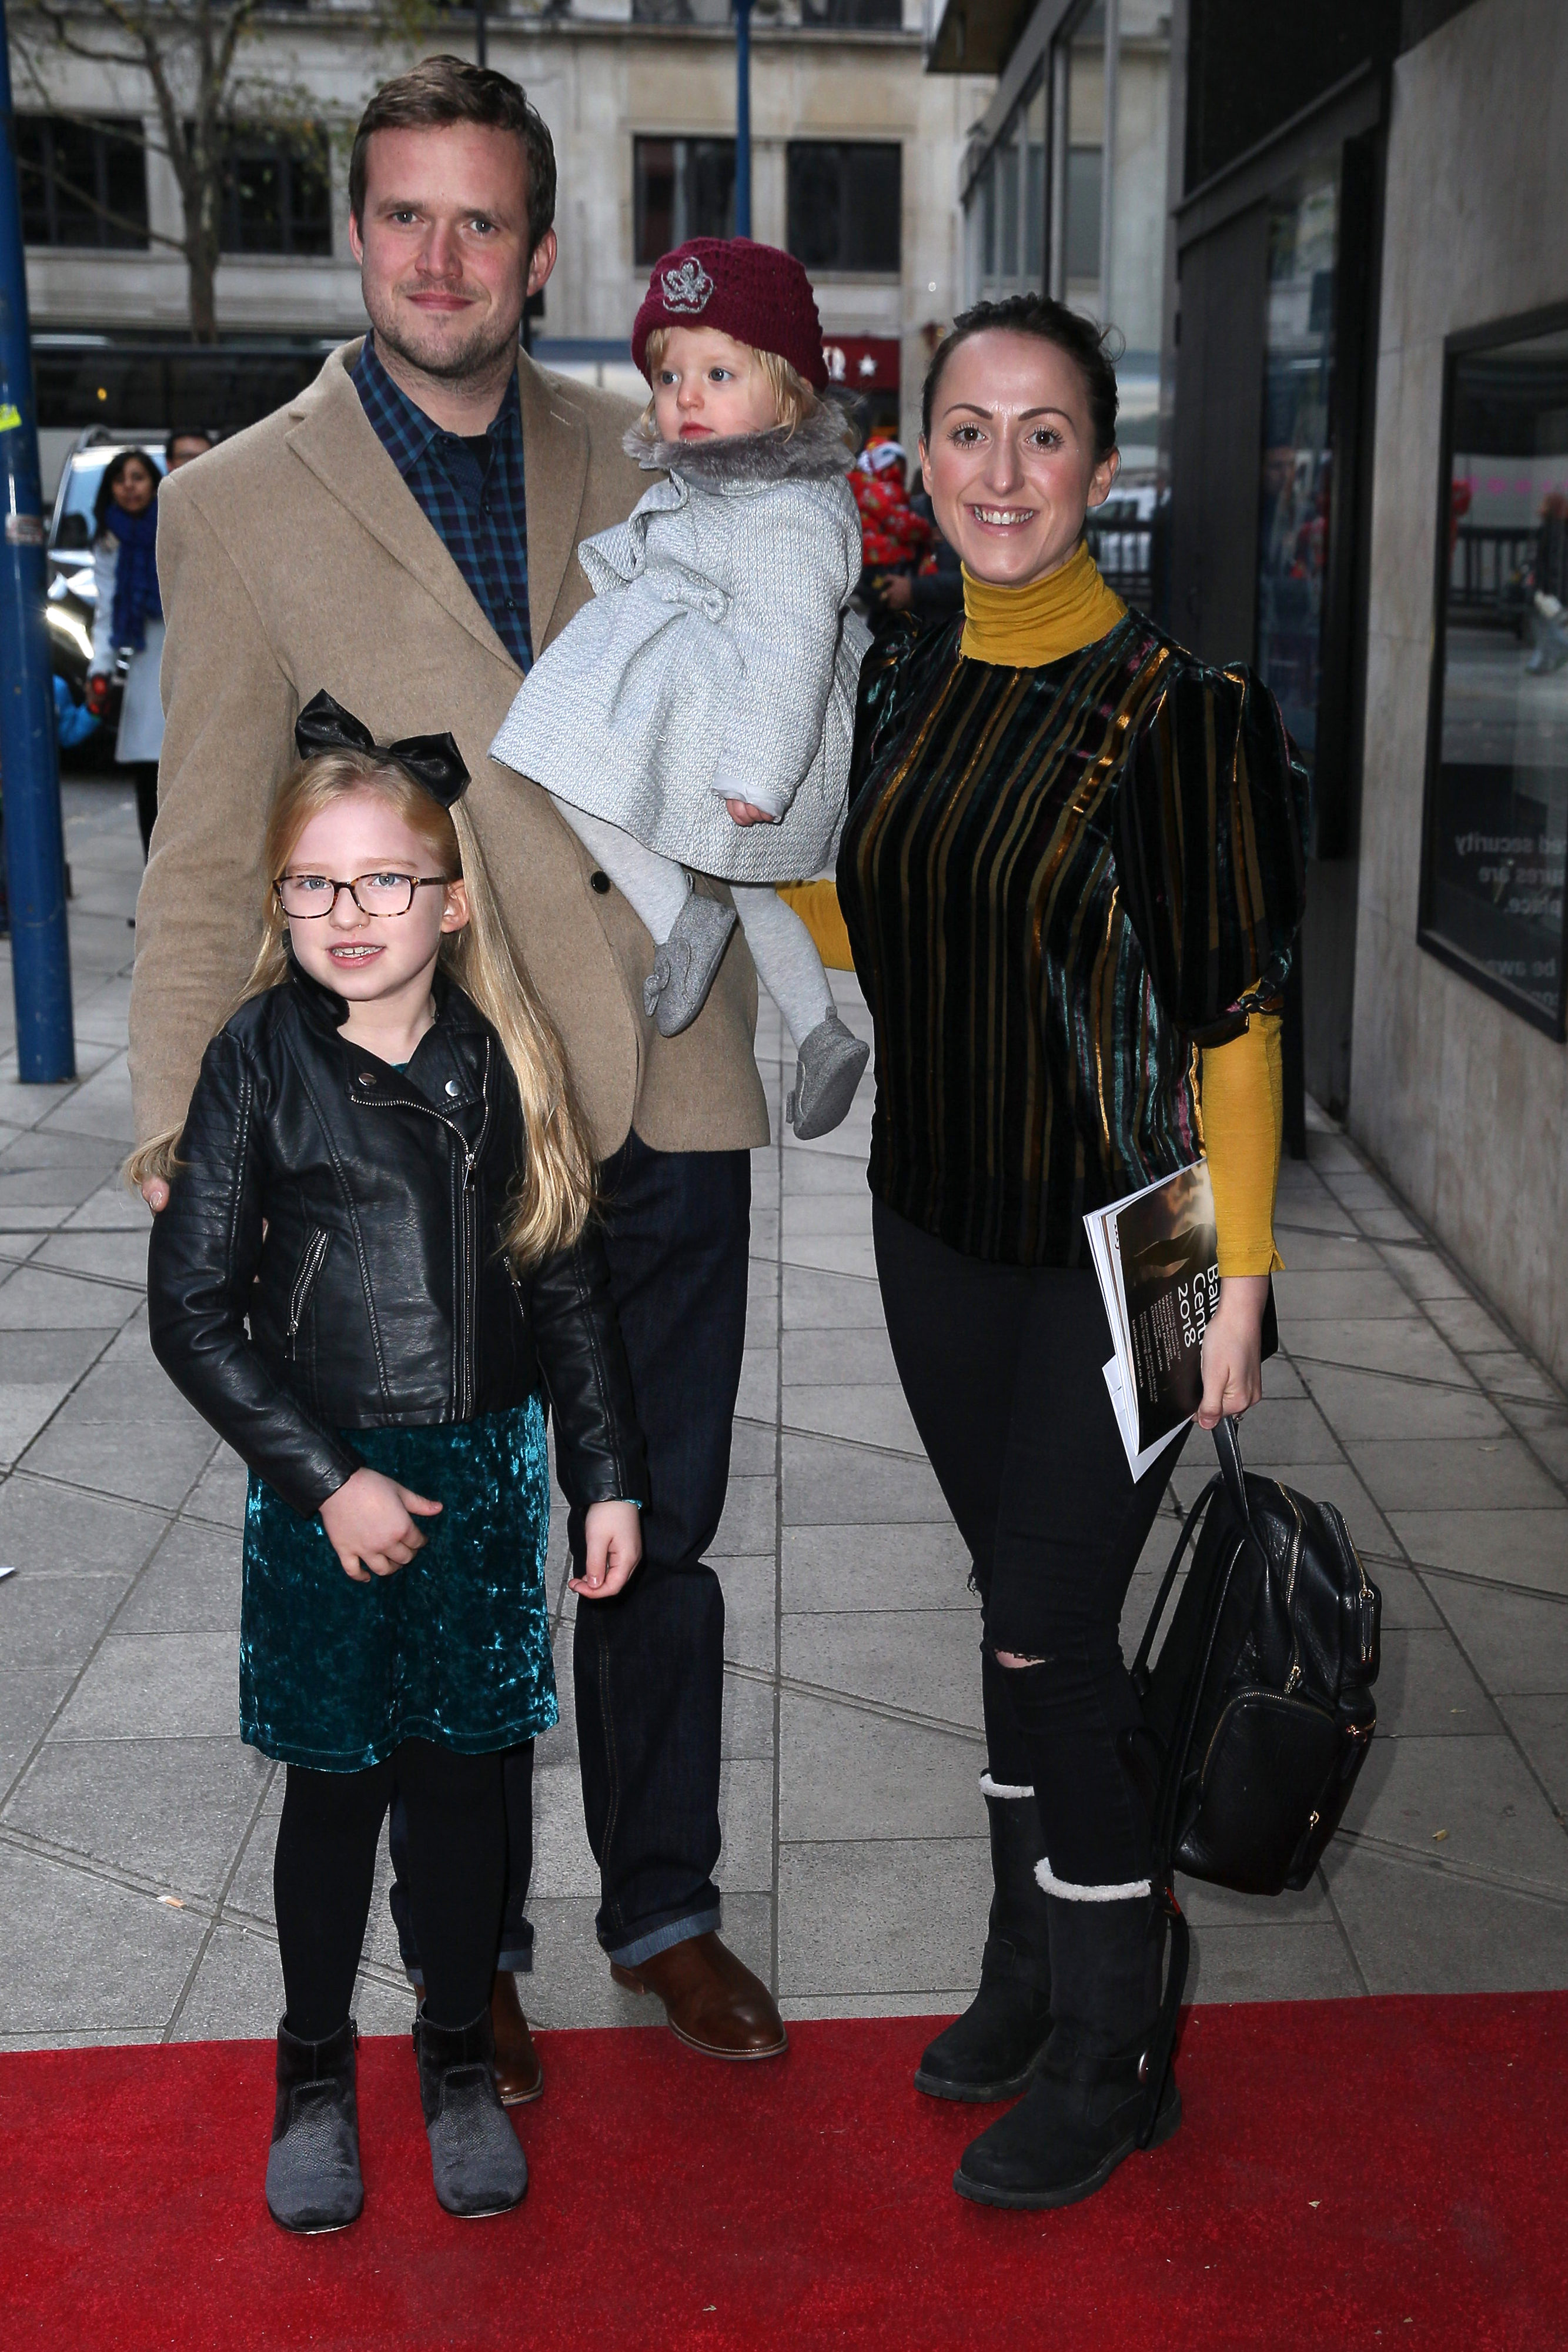 Natalie Cassidy and her family